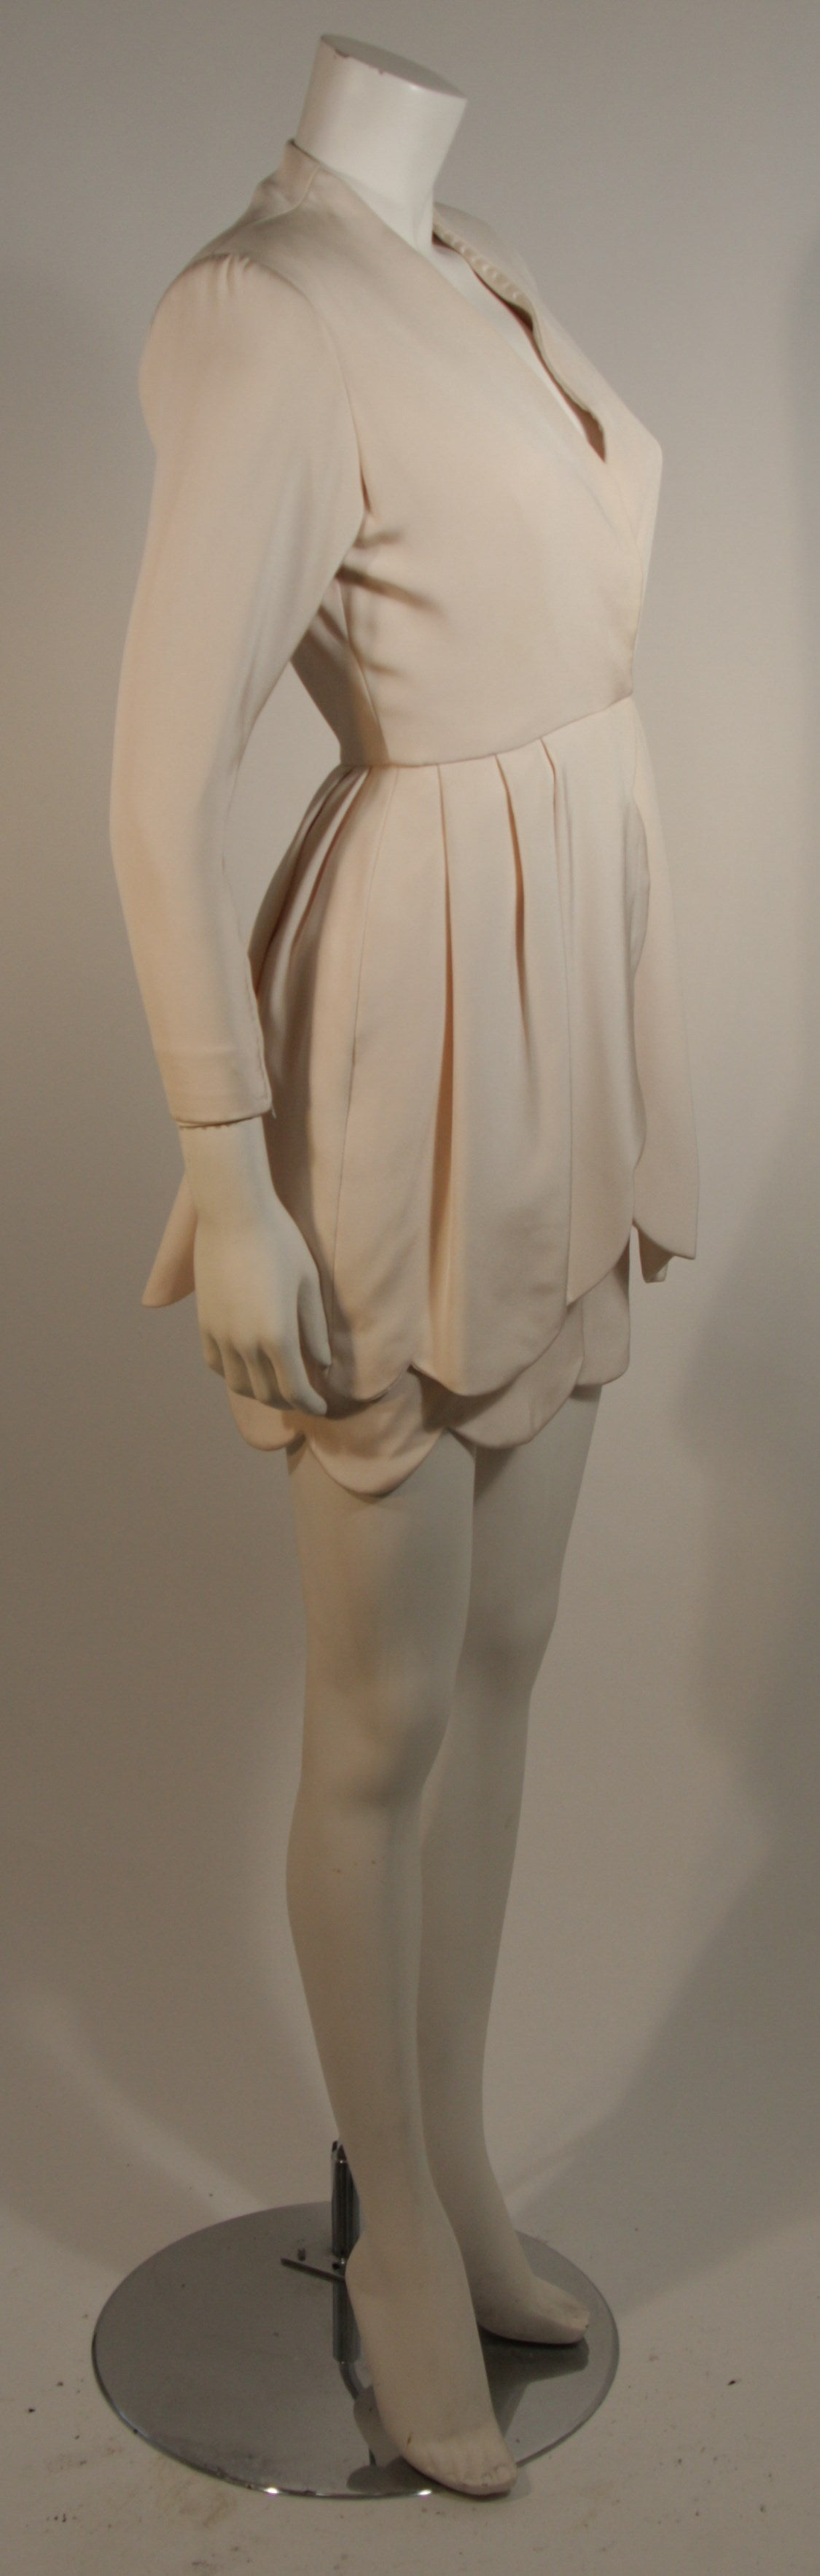 Women's Attributed to Valentino Scallop Edge Cocktail Dress Size Small For Sale